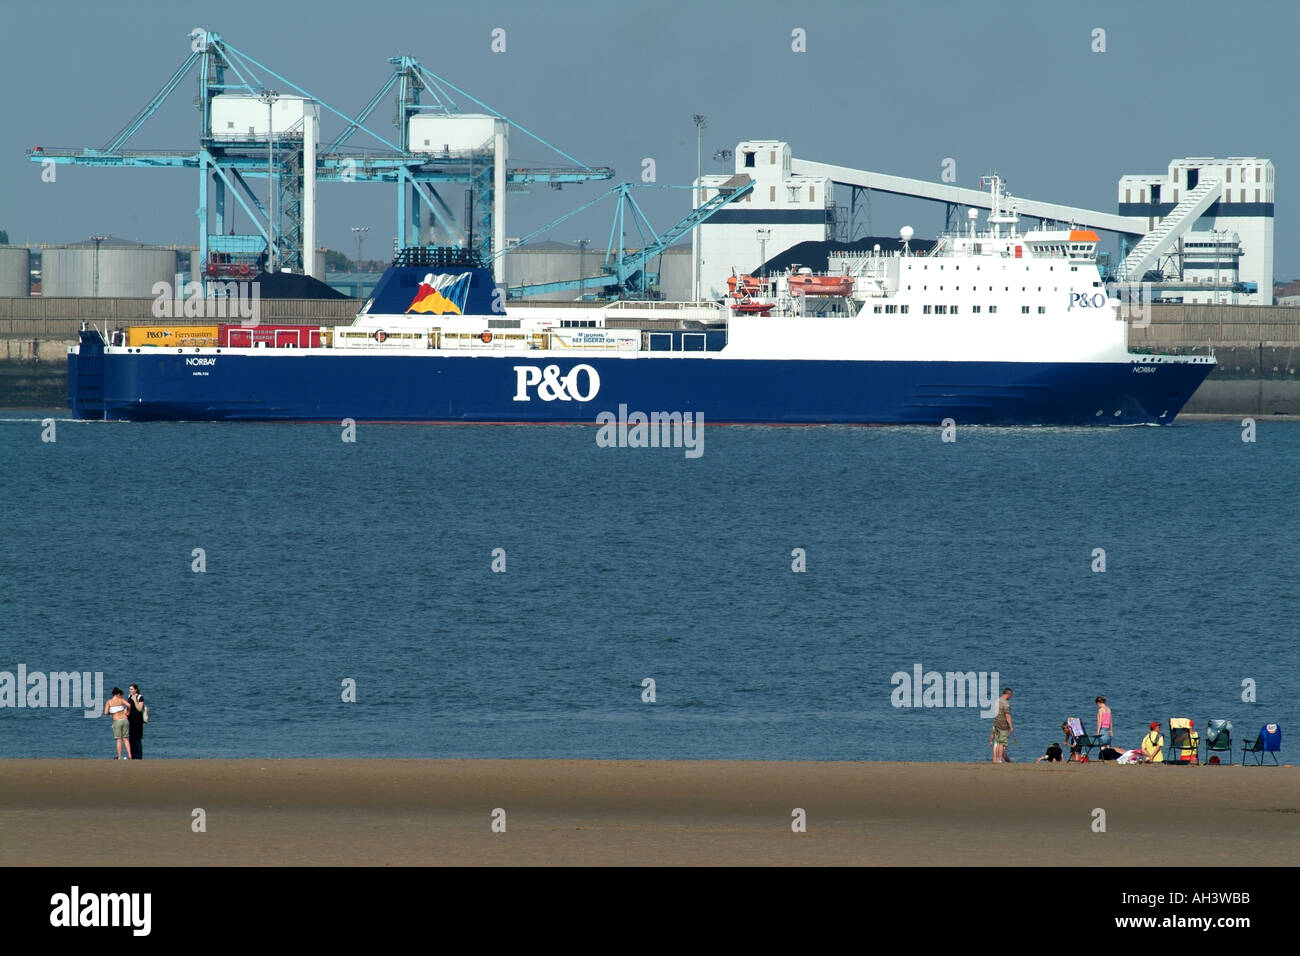 P and O P&O vessel Norbay on the River Mersey Merseyside Liverpool northern England UK and New Brighton beach - Stock Image